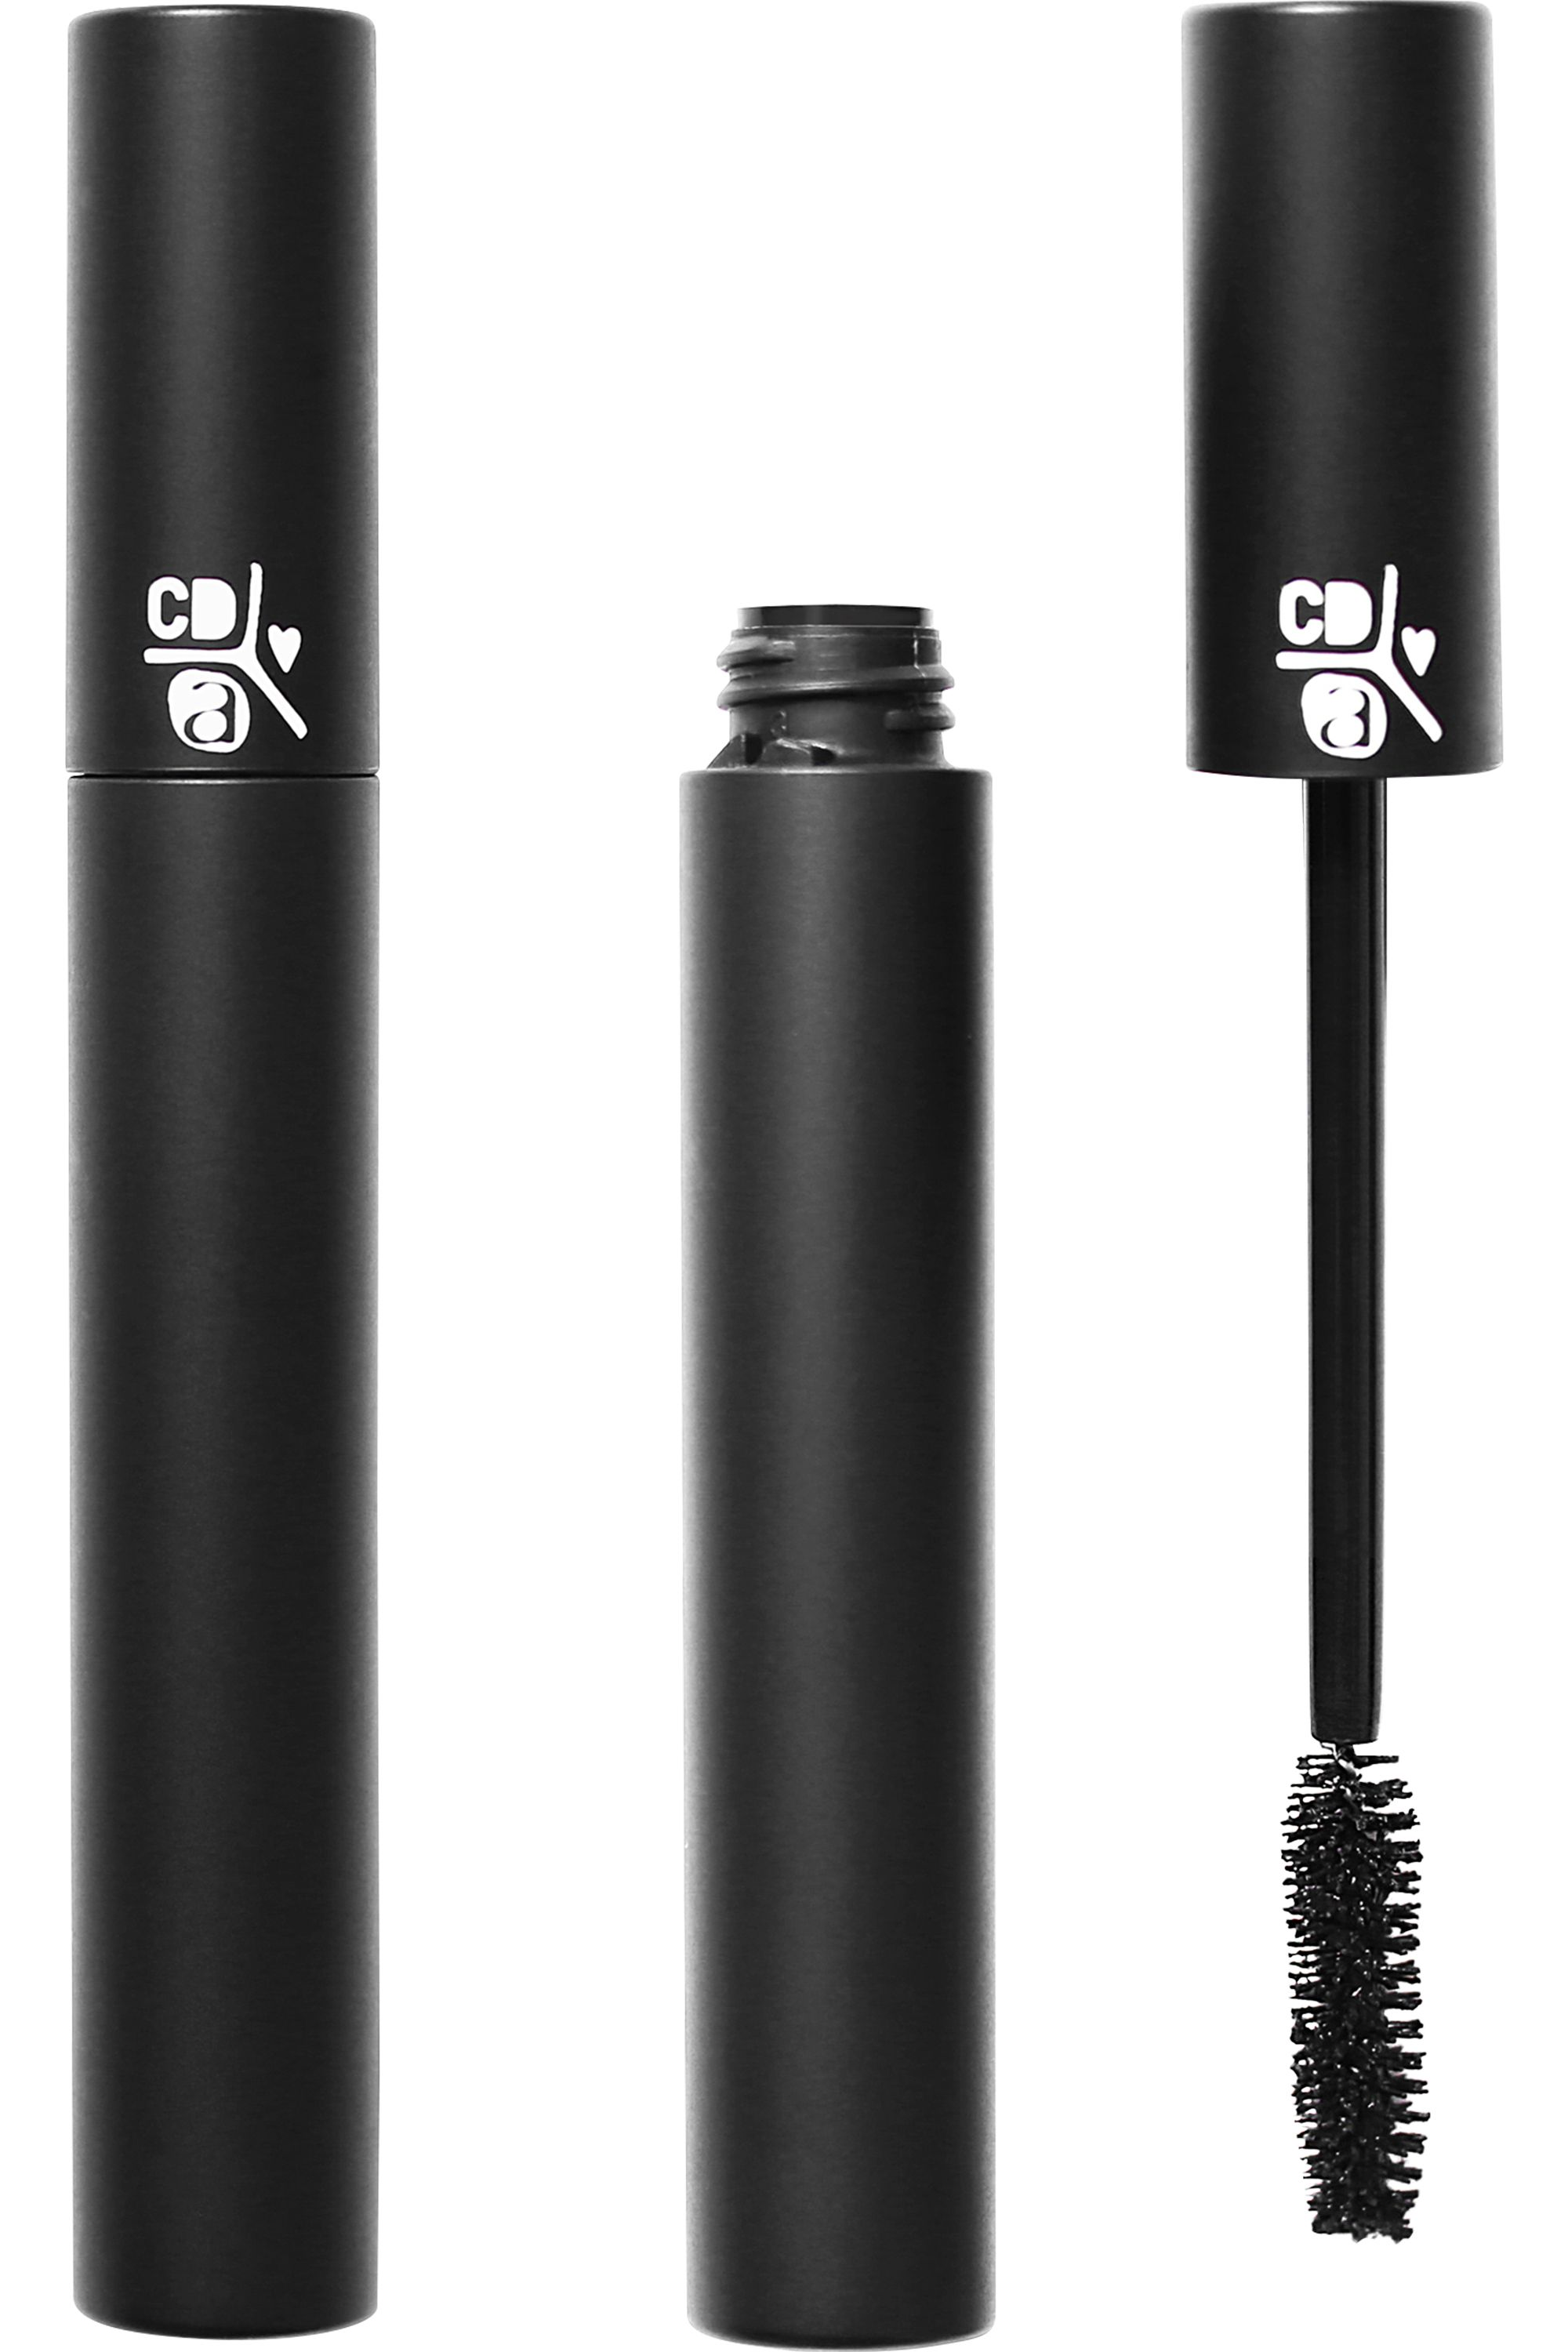 Blissim : Absolution - Mascara Noir Sweet & Safe - Mascara Noir Sweet & Safe